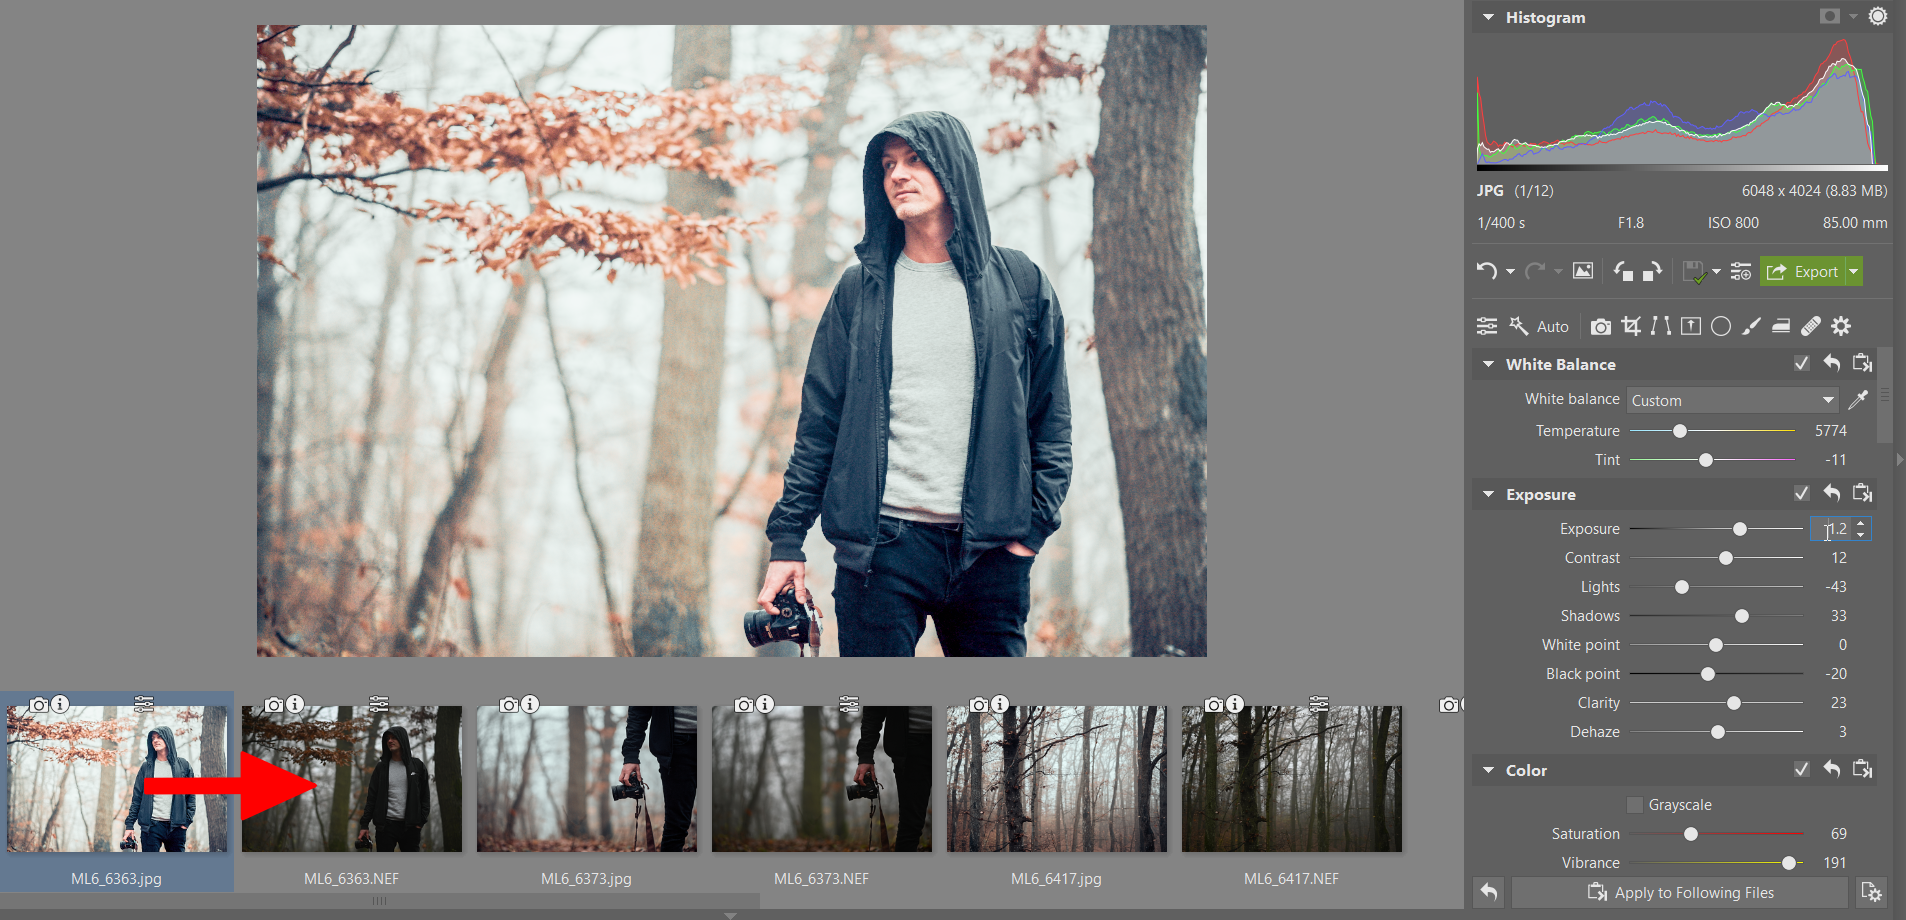 Save time editing your photos by copying edits